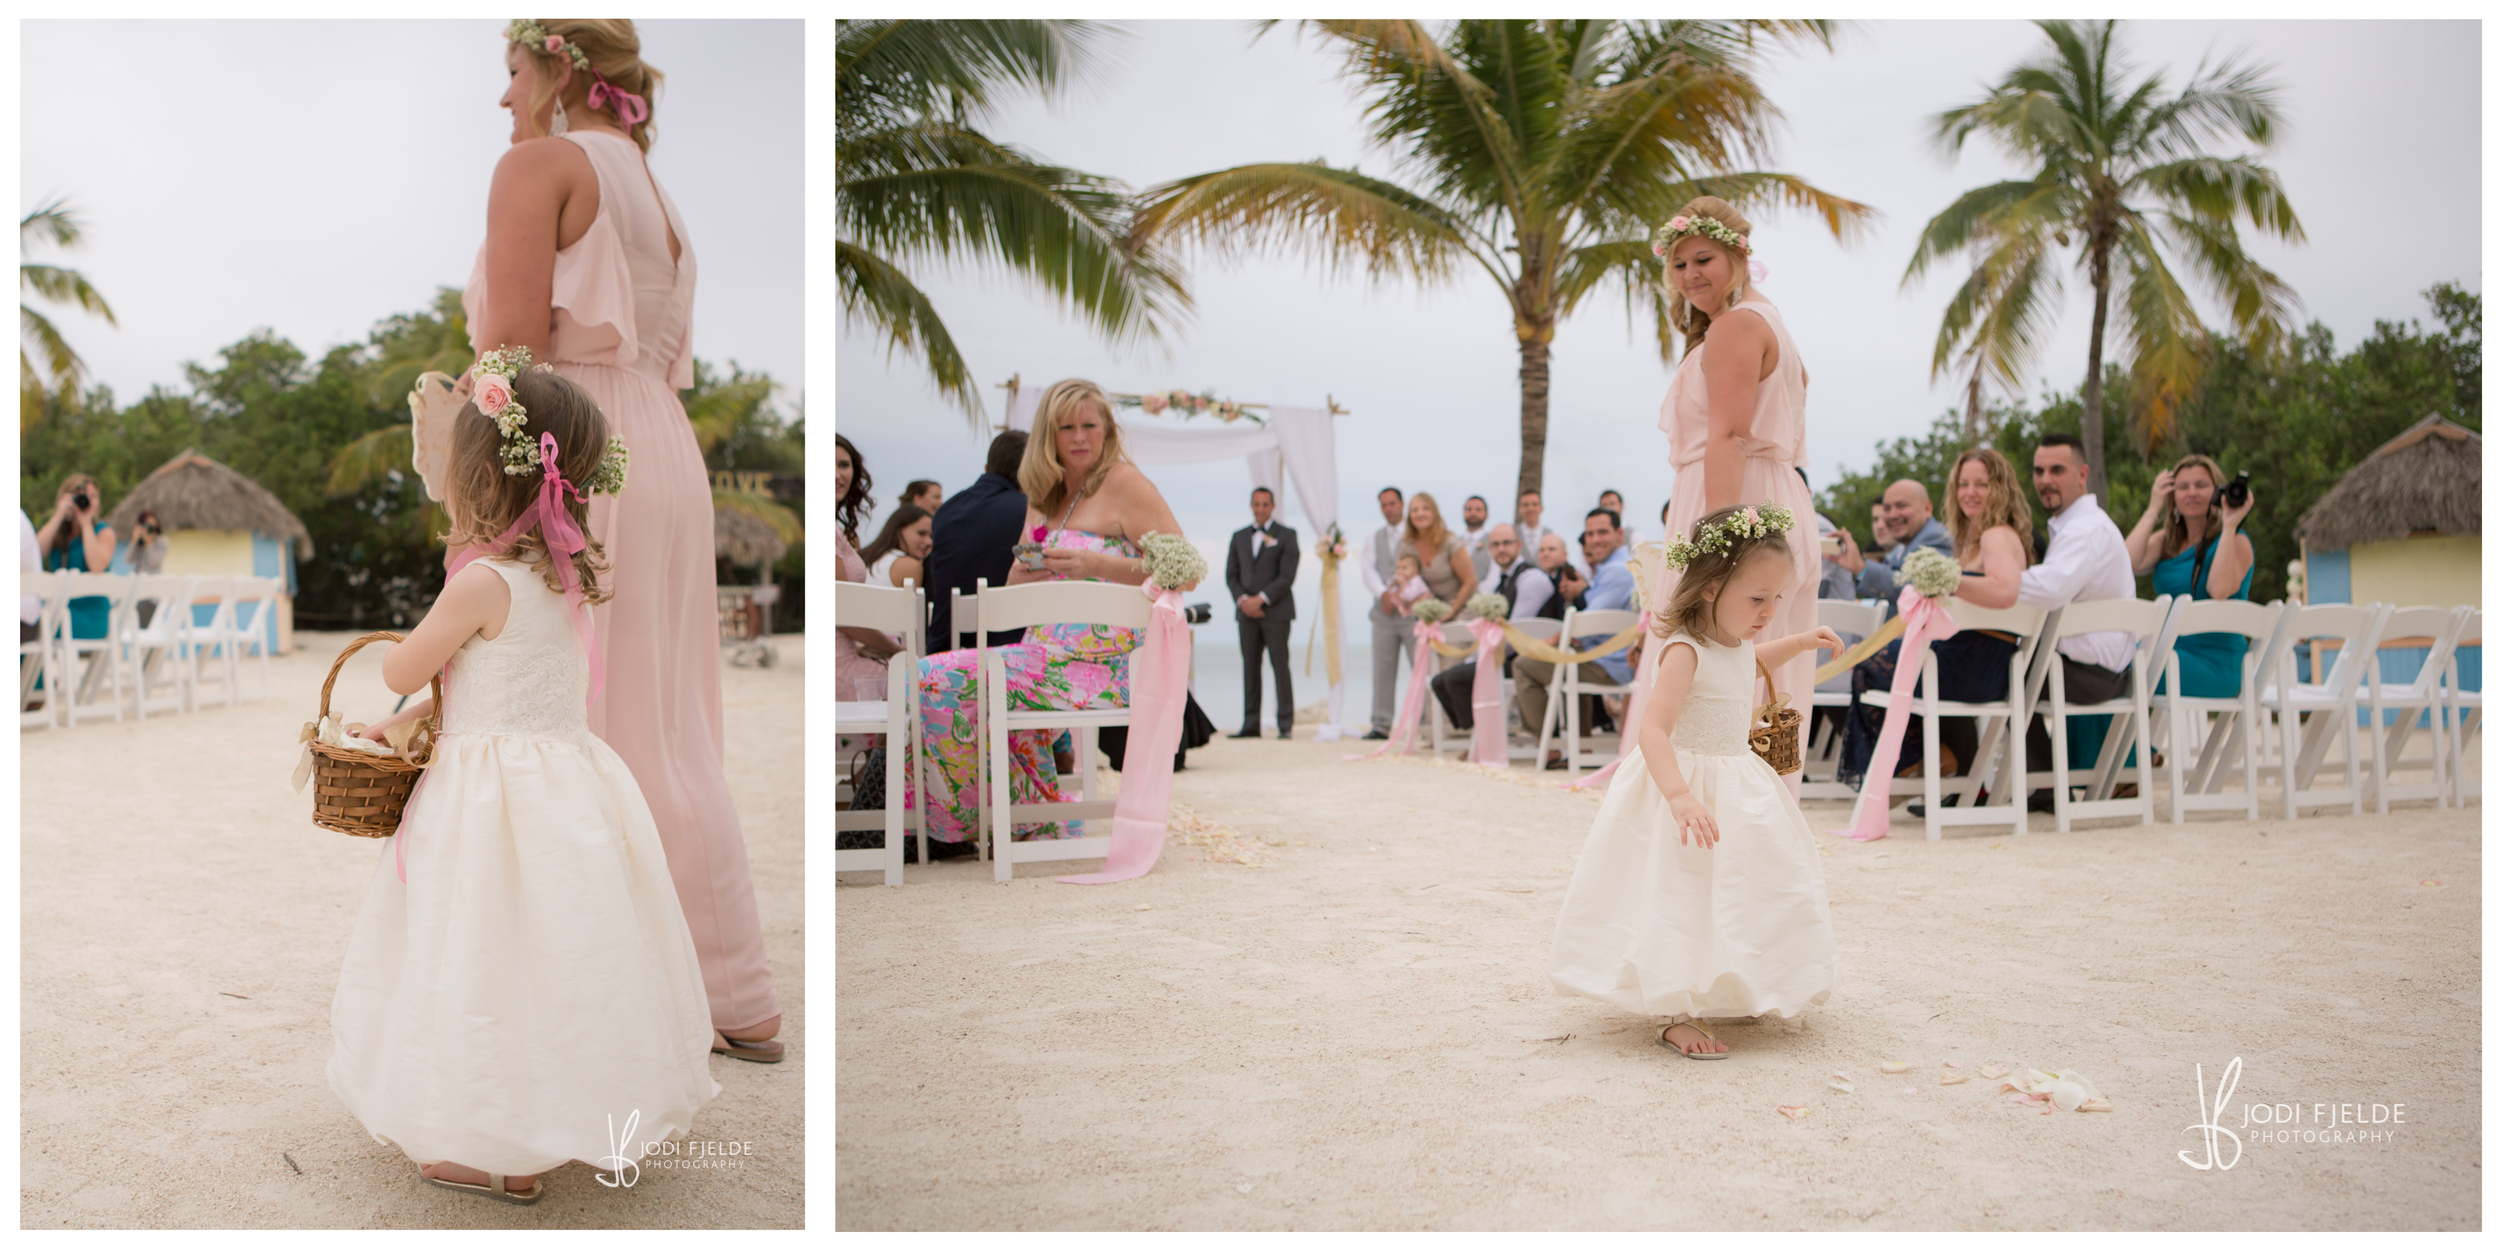 Cocconut_Cove_&_ Marina_ wedding_Kalie_and_Kurt 22.jpg